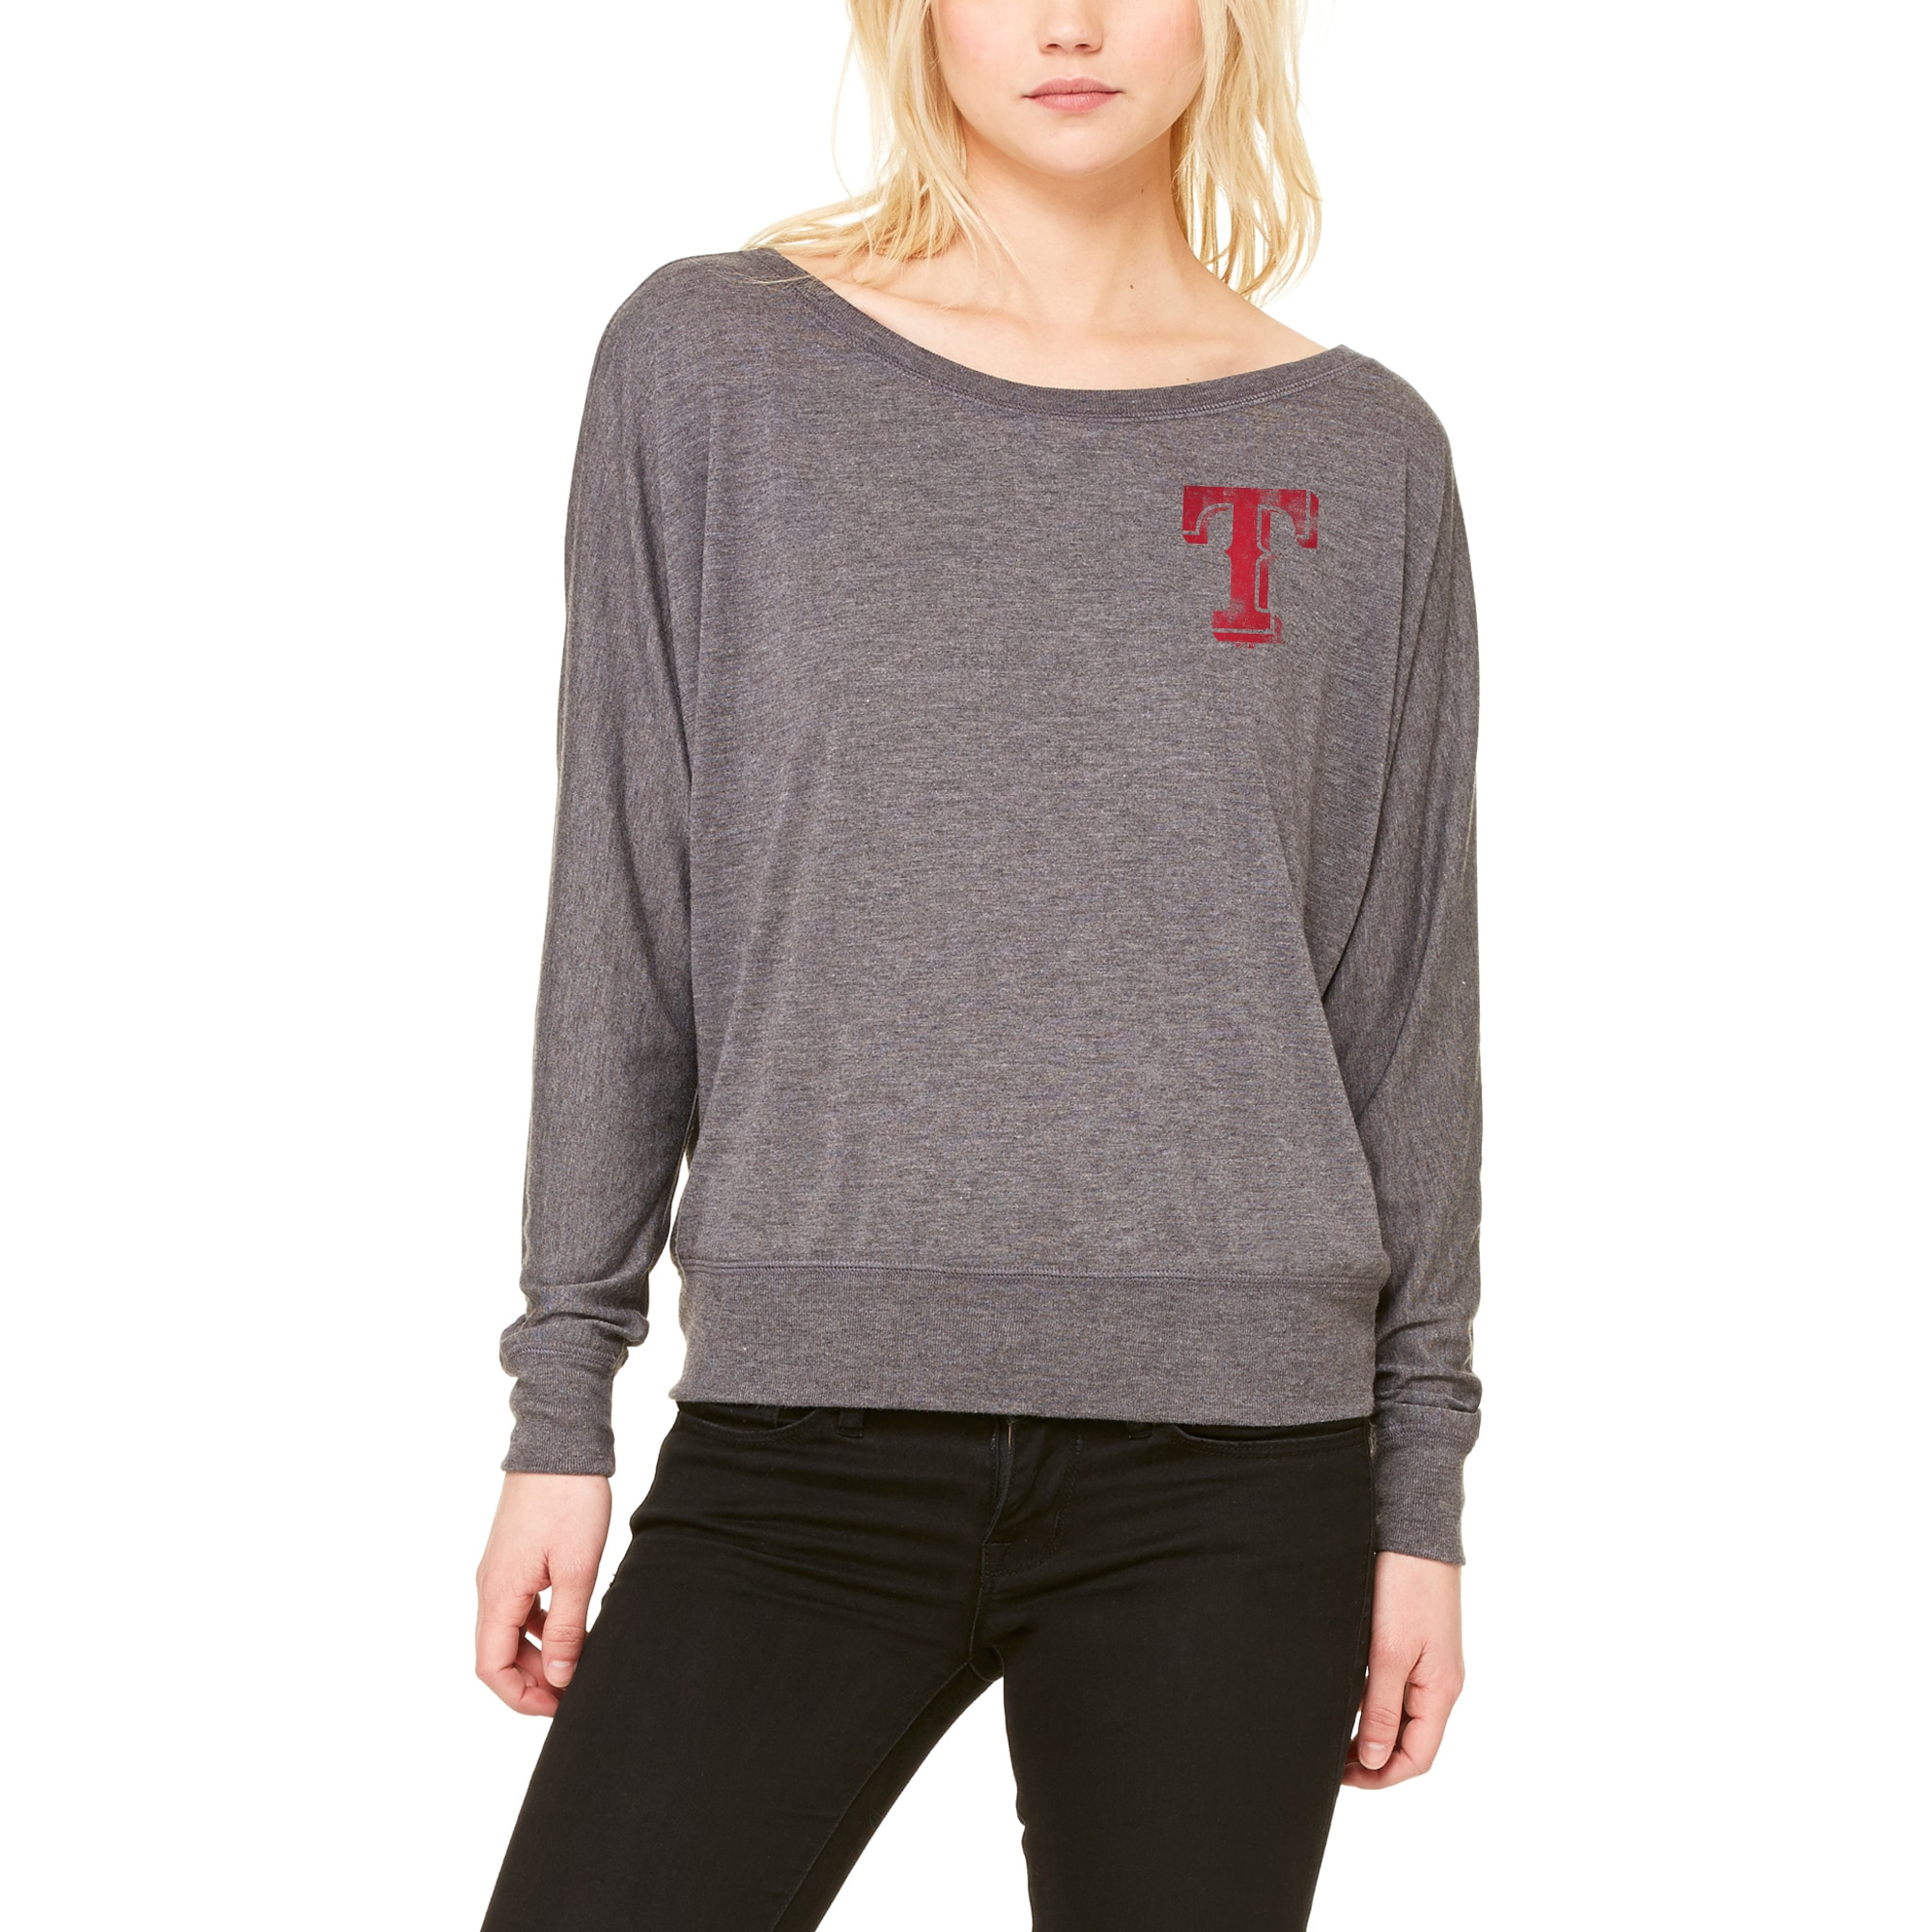 Texas Rangers Let Loose by RNL Women's Winning Off-Shoulder Long Sleeve T-Shirt - Dark Heathered Gray